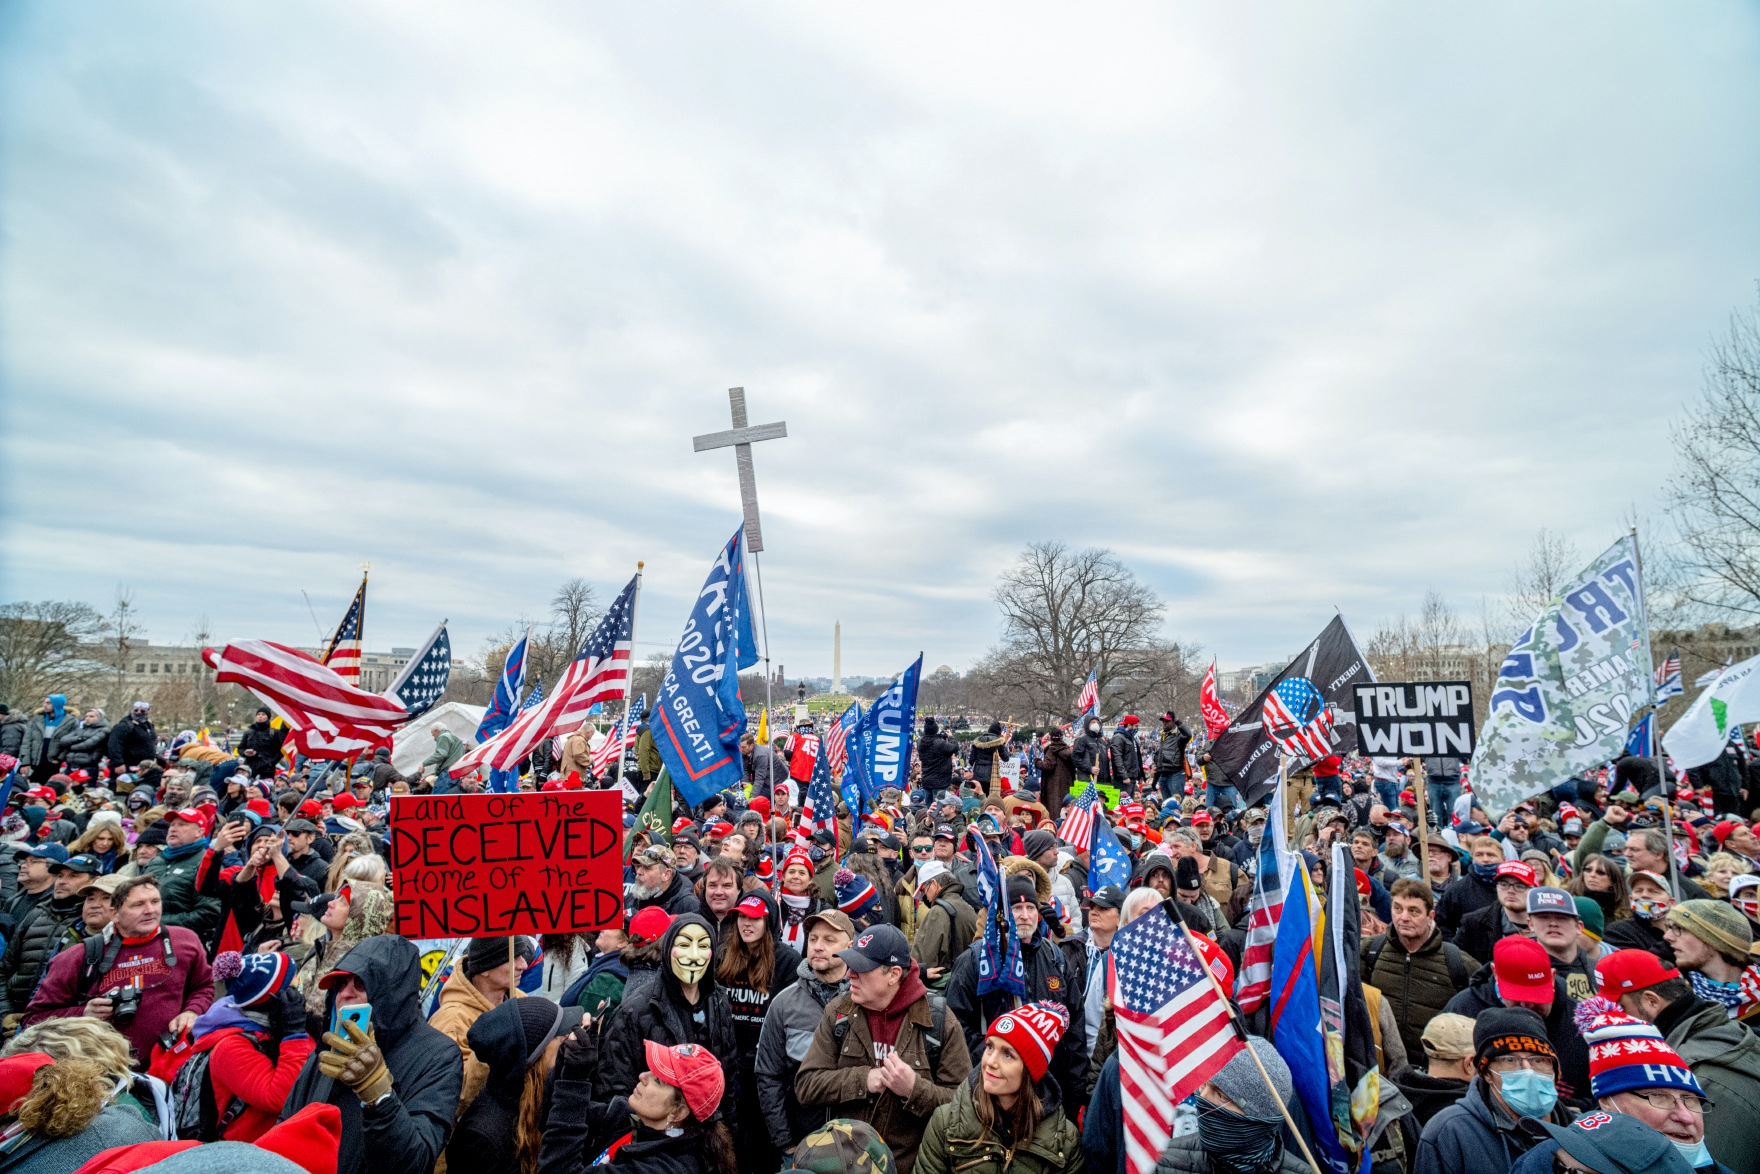 Trump supporters marching